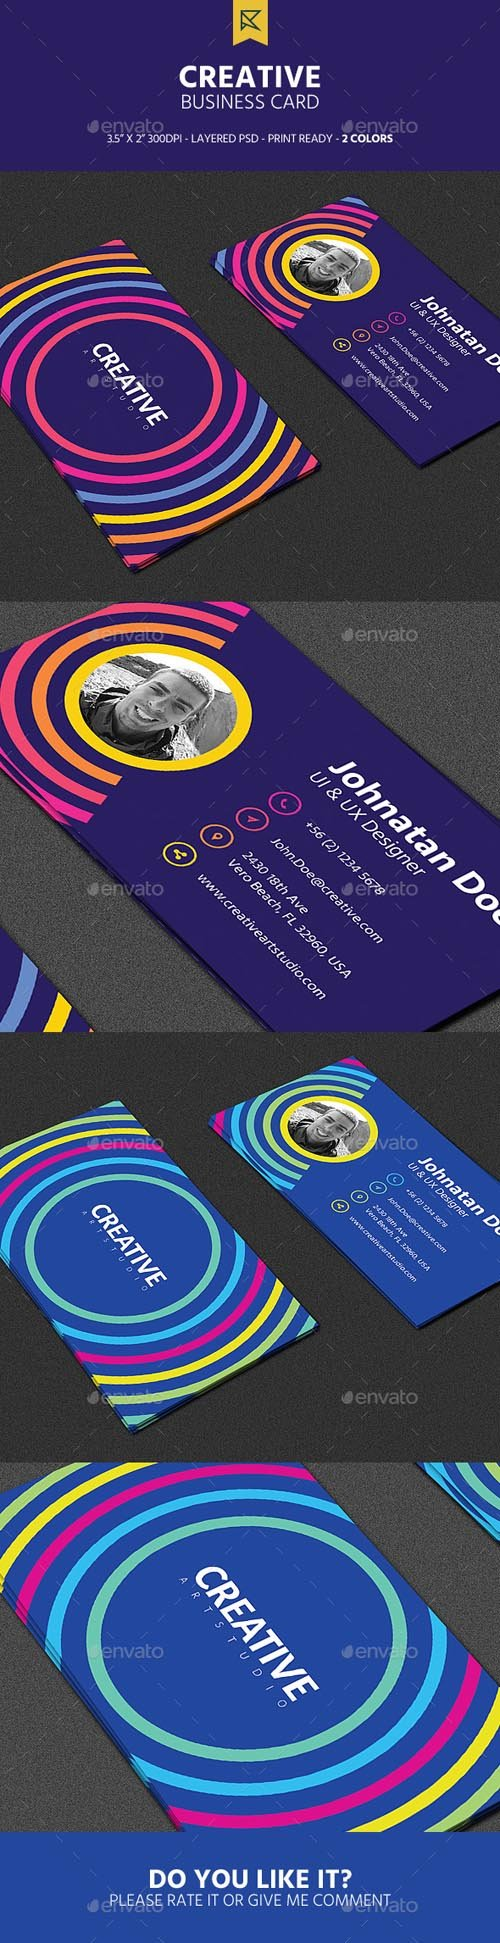 GR - Creative Business Card 19644804